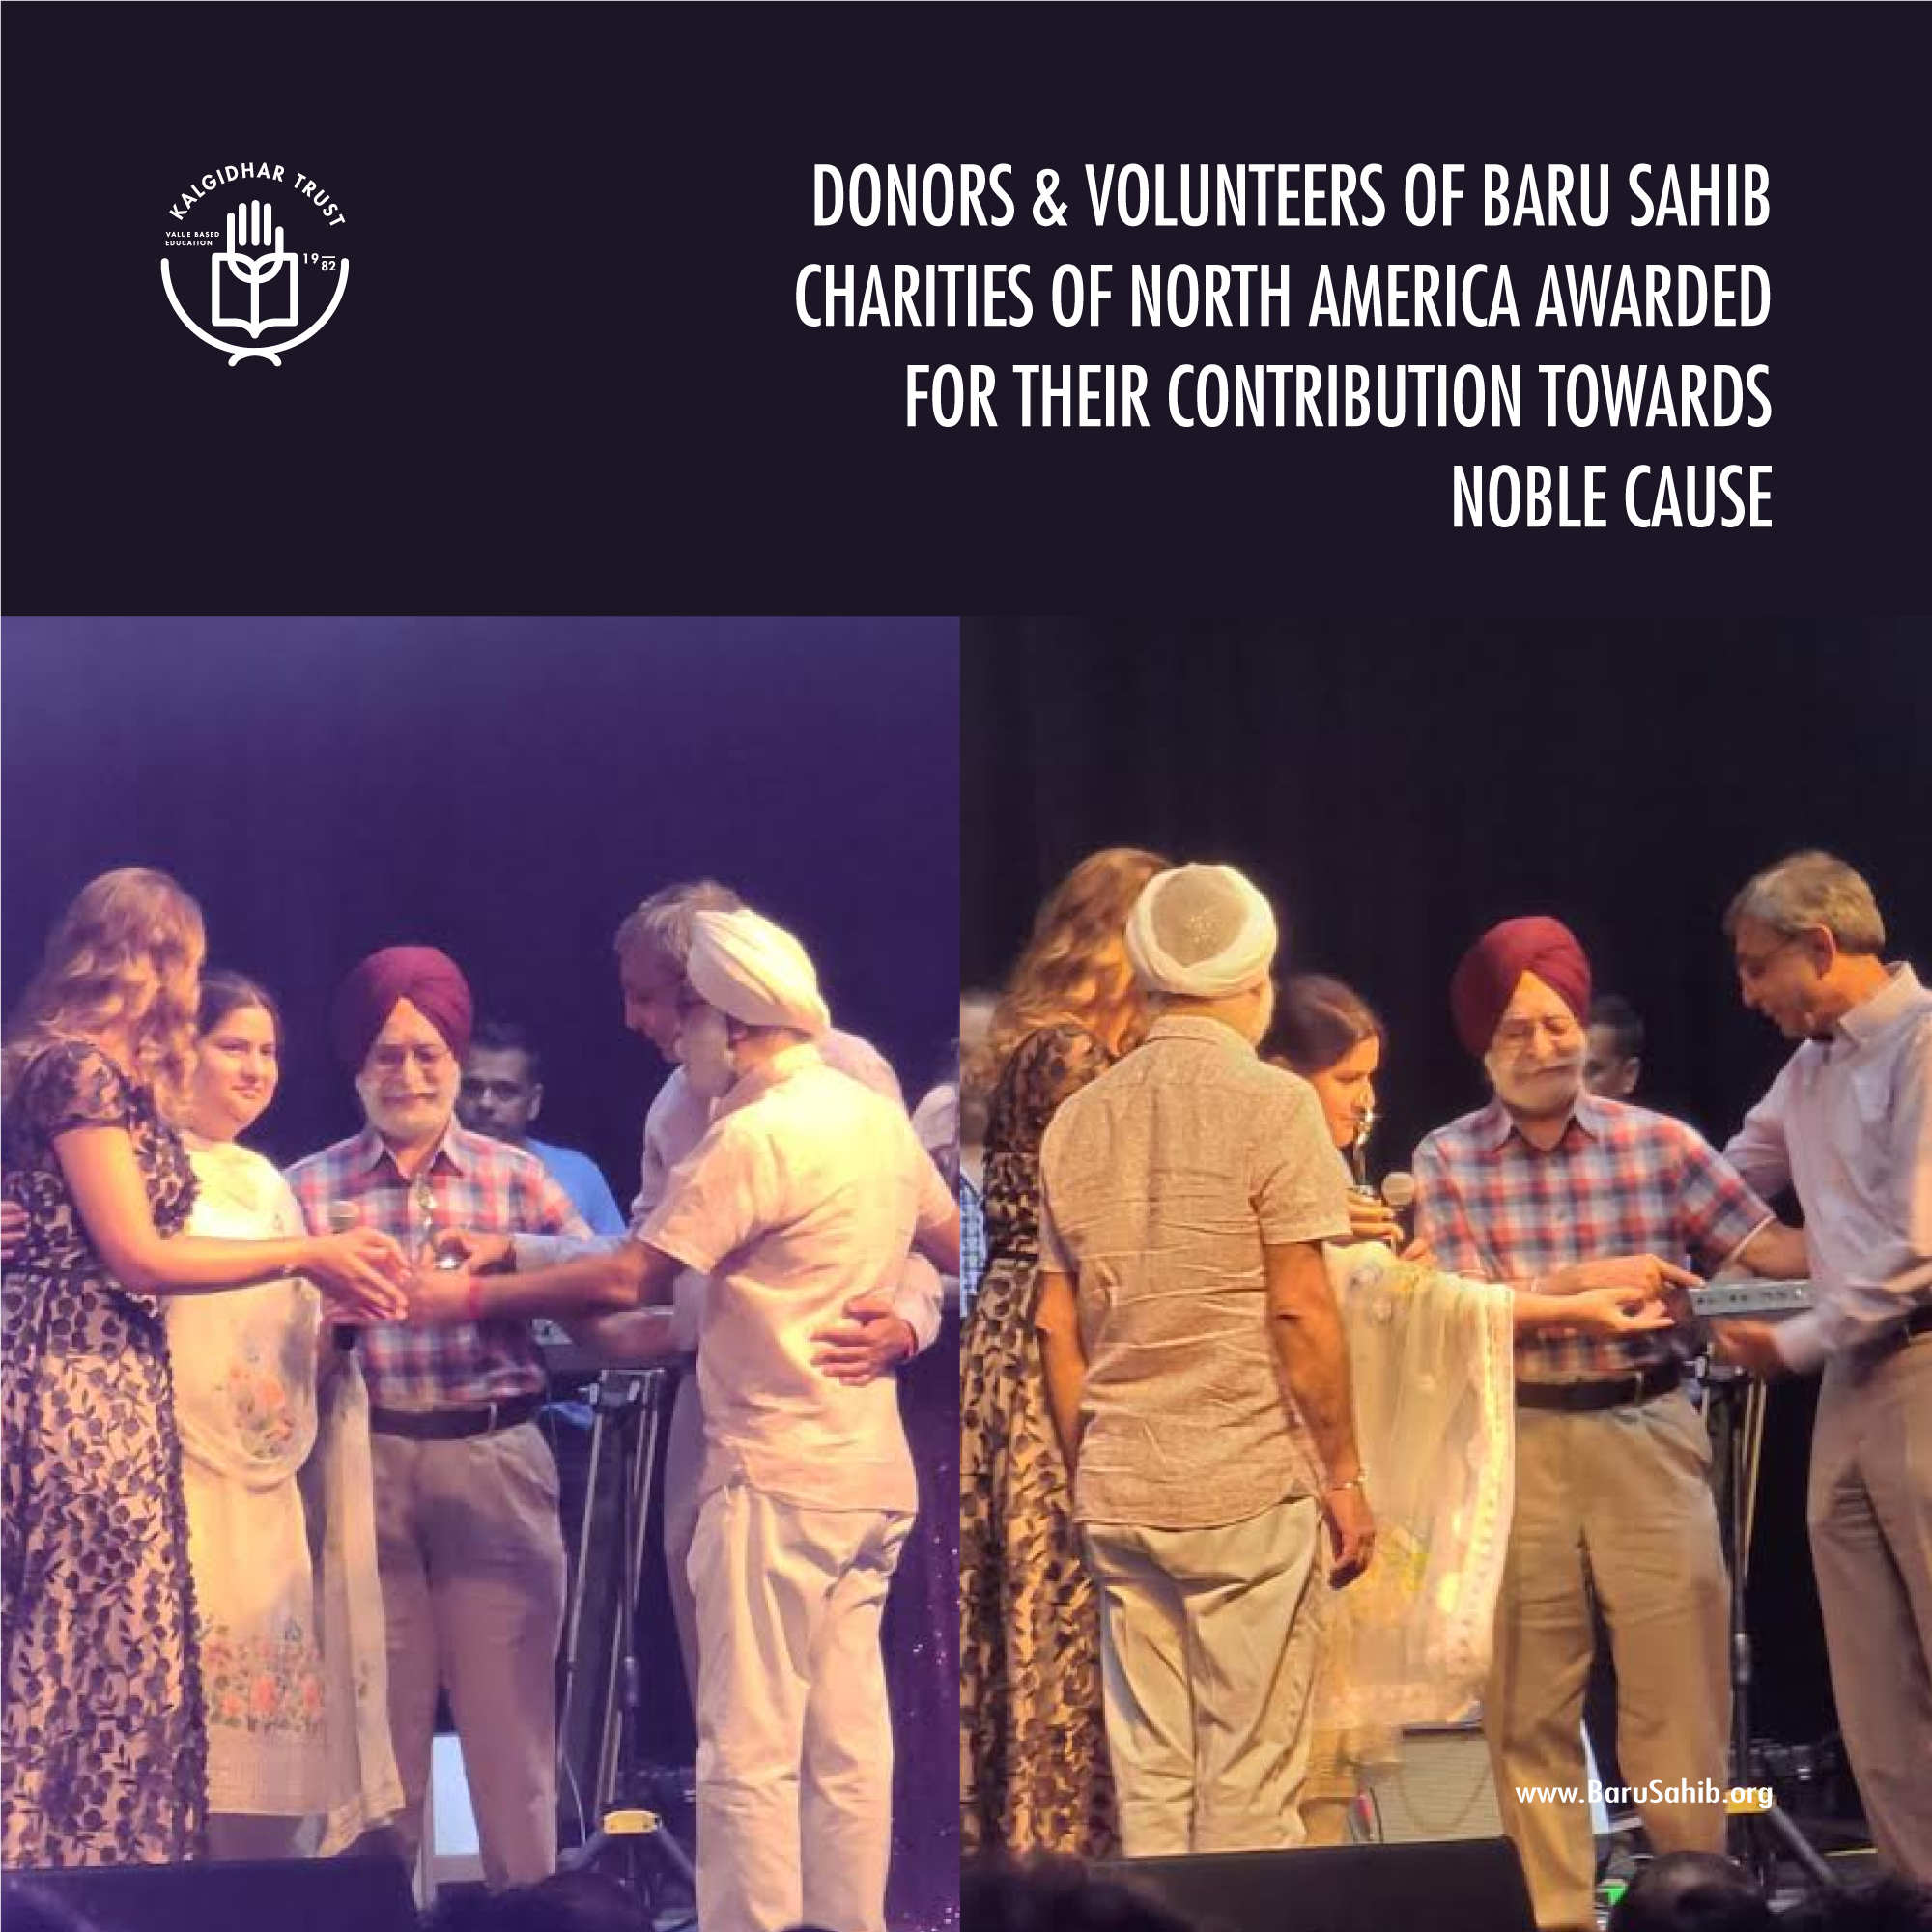 Donors & Volunteers of Baru Sahib Charities of North America awarded for their contribution towards noble cause